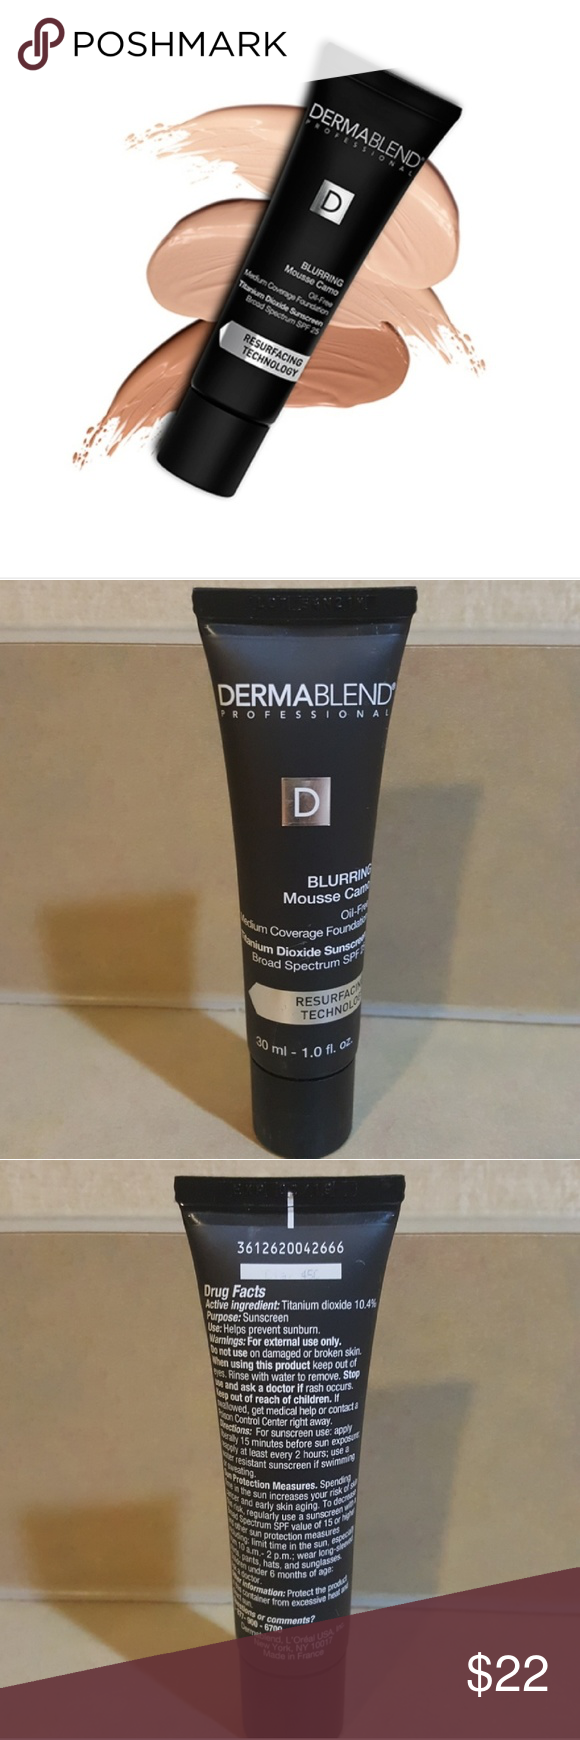 Expired Dermablend Blurring Mousse Camo Mousse, Makeup